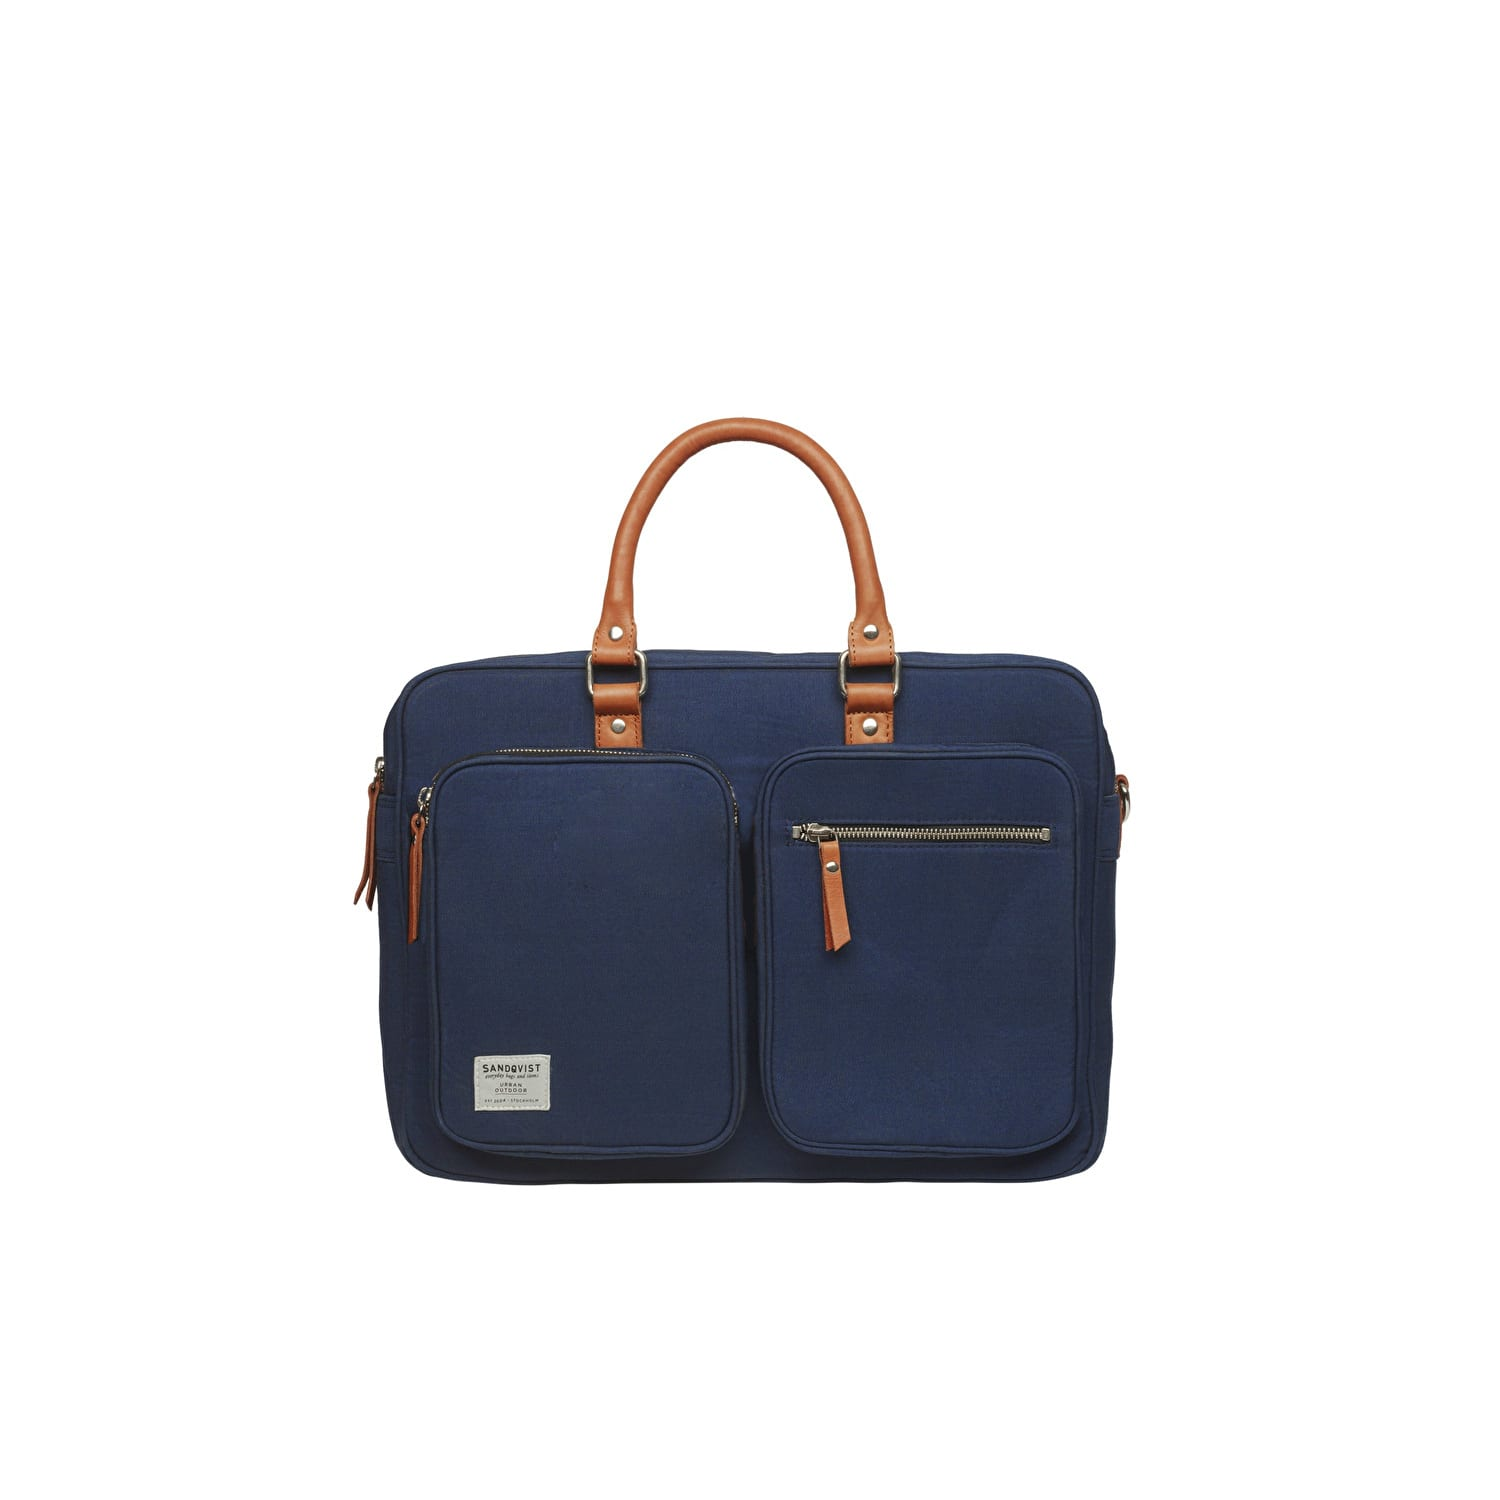 822146ed0ccf Trouva  Sandqvist Arne Bag in Blue